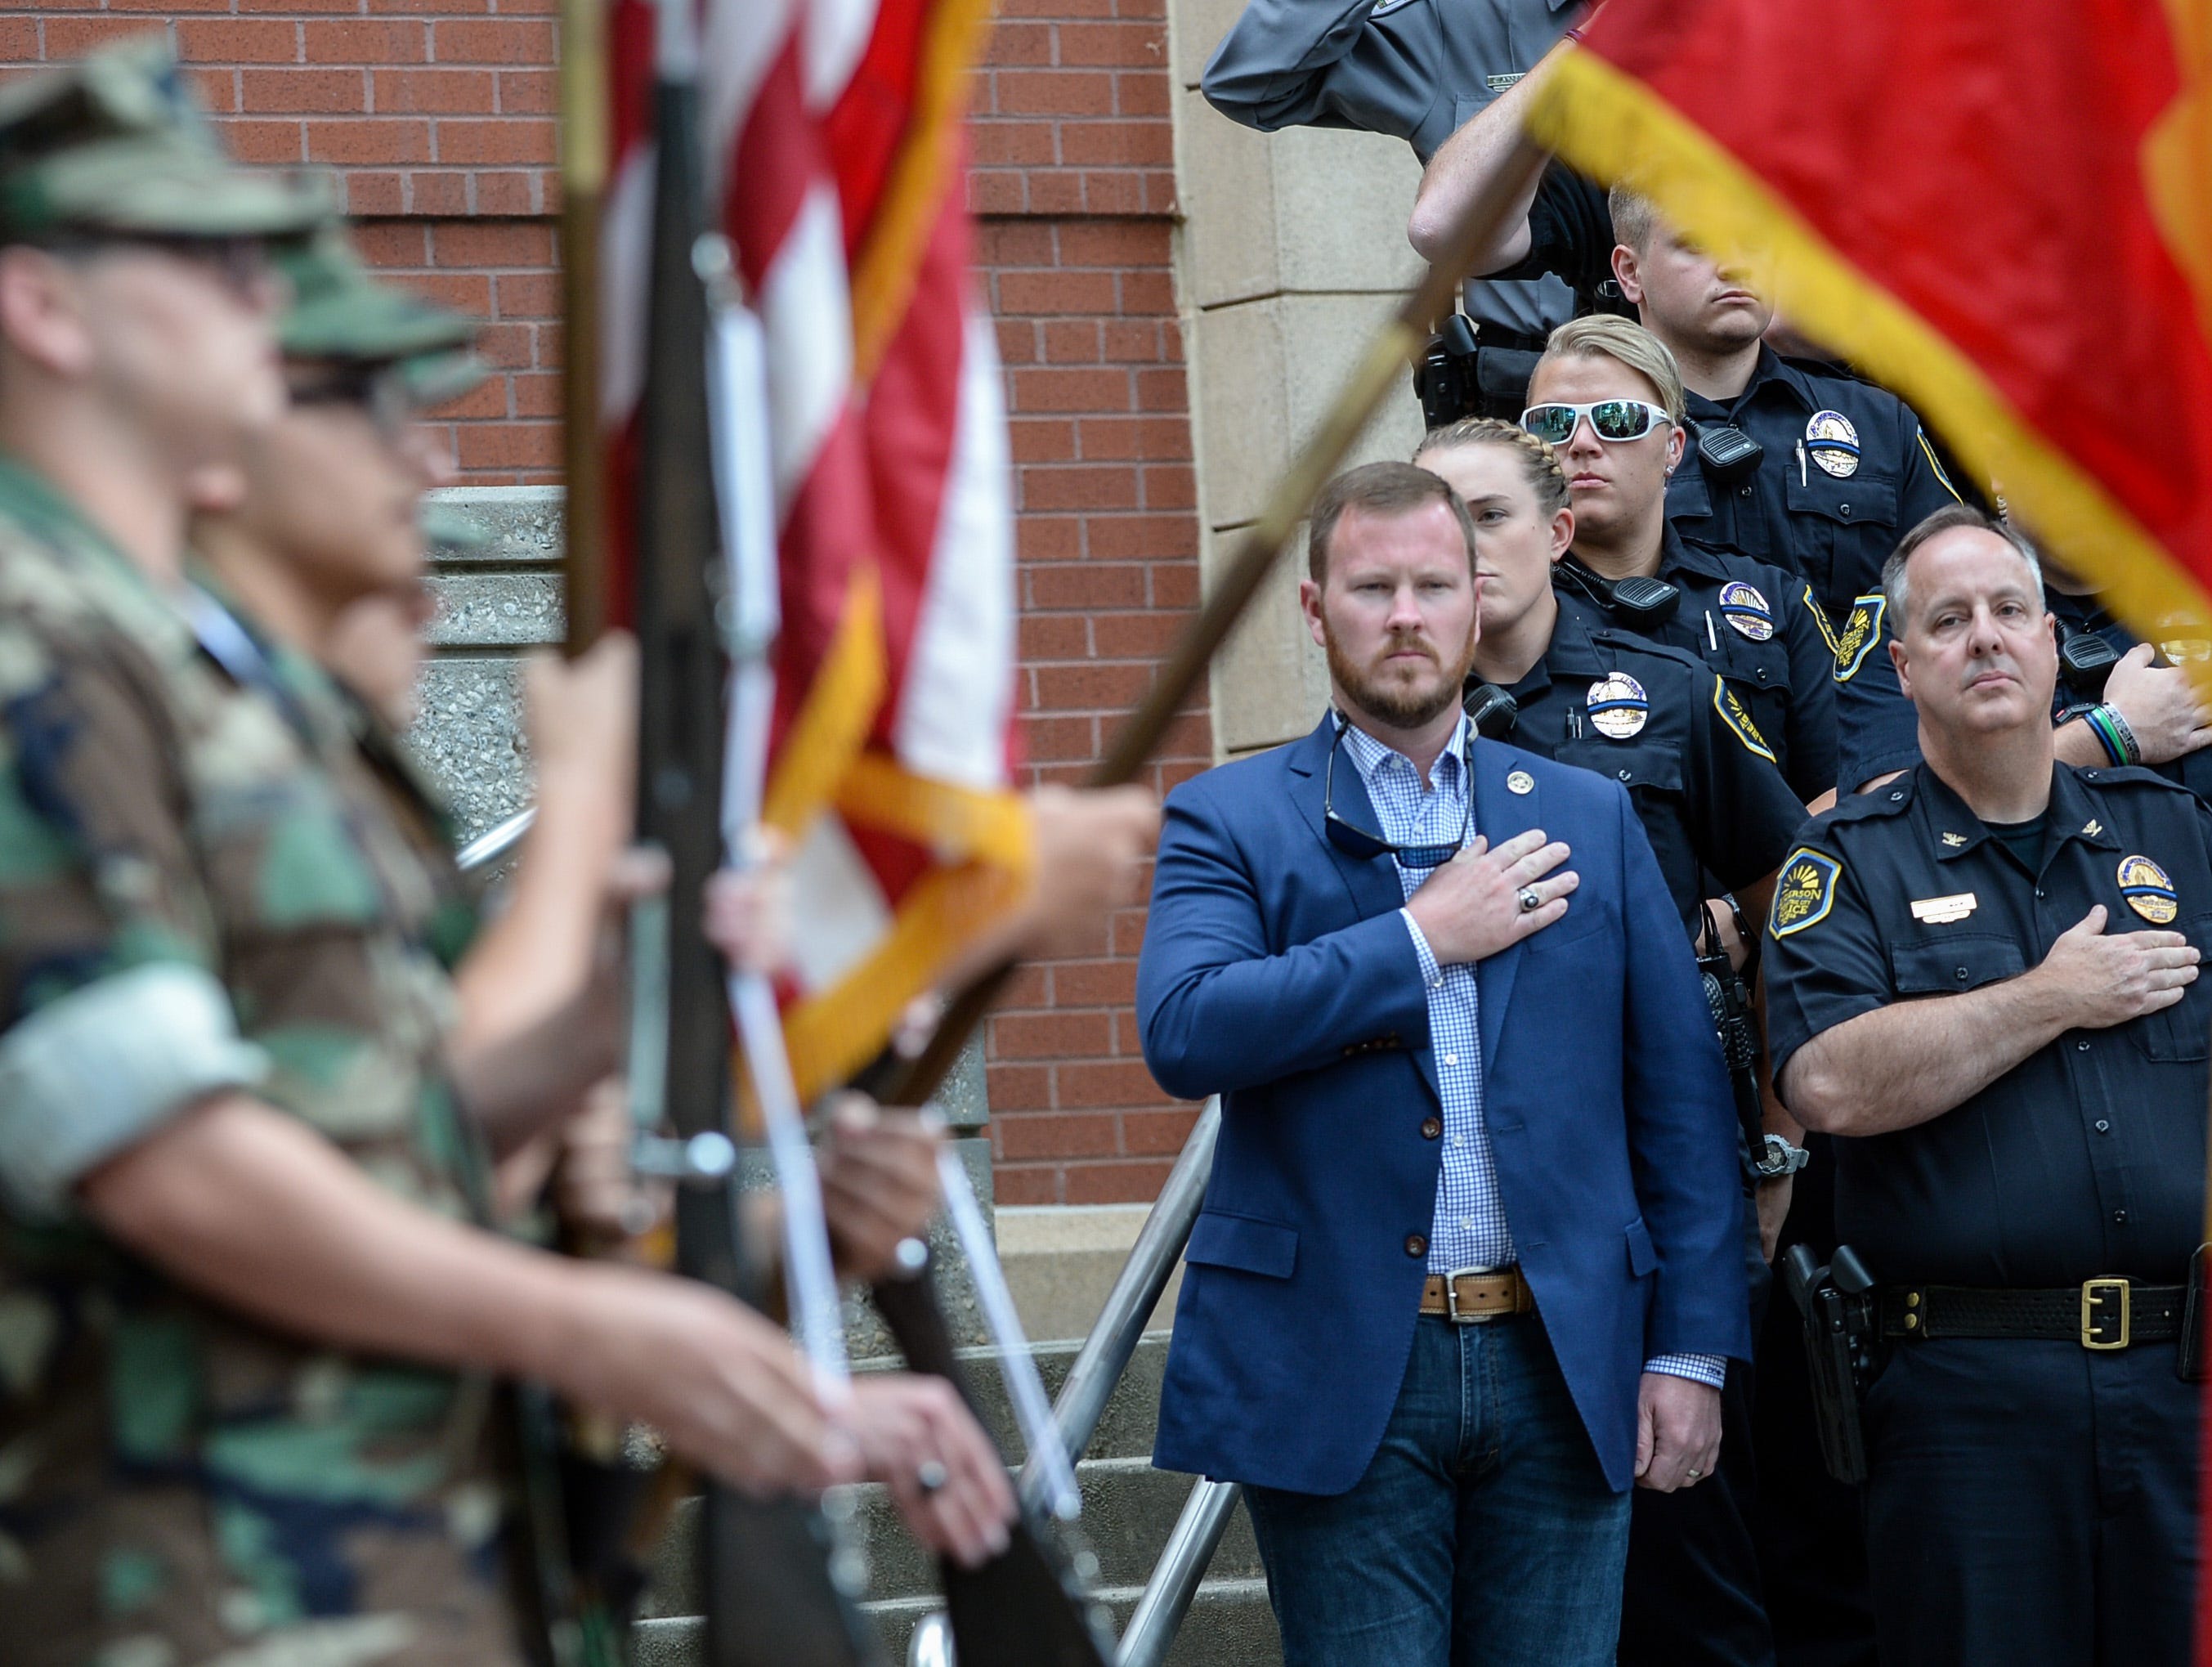 Sheriff Chad McBride, left, and Anderson Chief Jim Stewart salute as the Electric City Young Marines present colors for the 2019 Peace Officer Memorial Service Wednesday May 15, 2019. People attended to help honor the lives of officers lost in the line of duty.